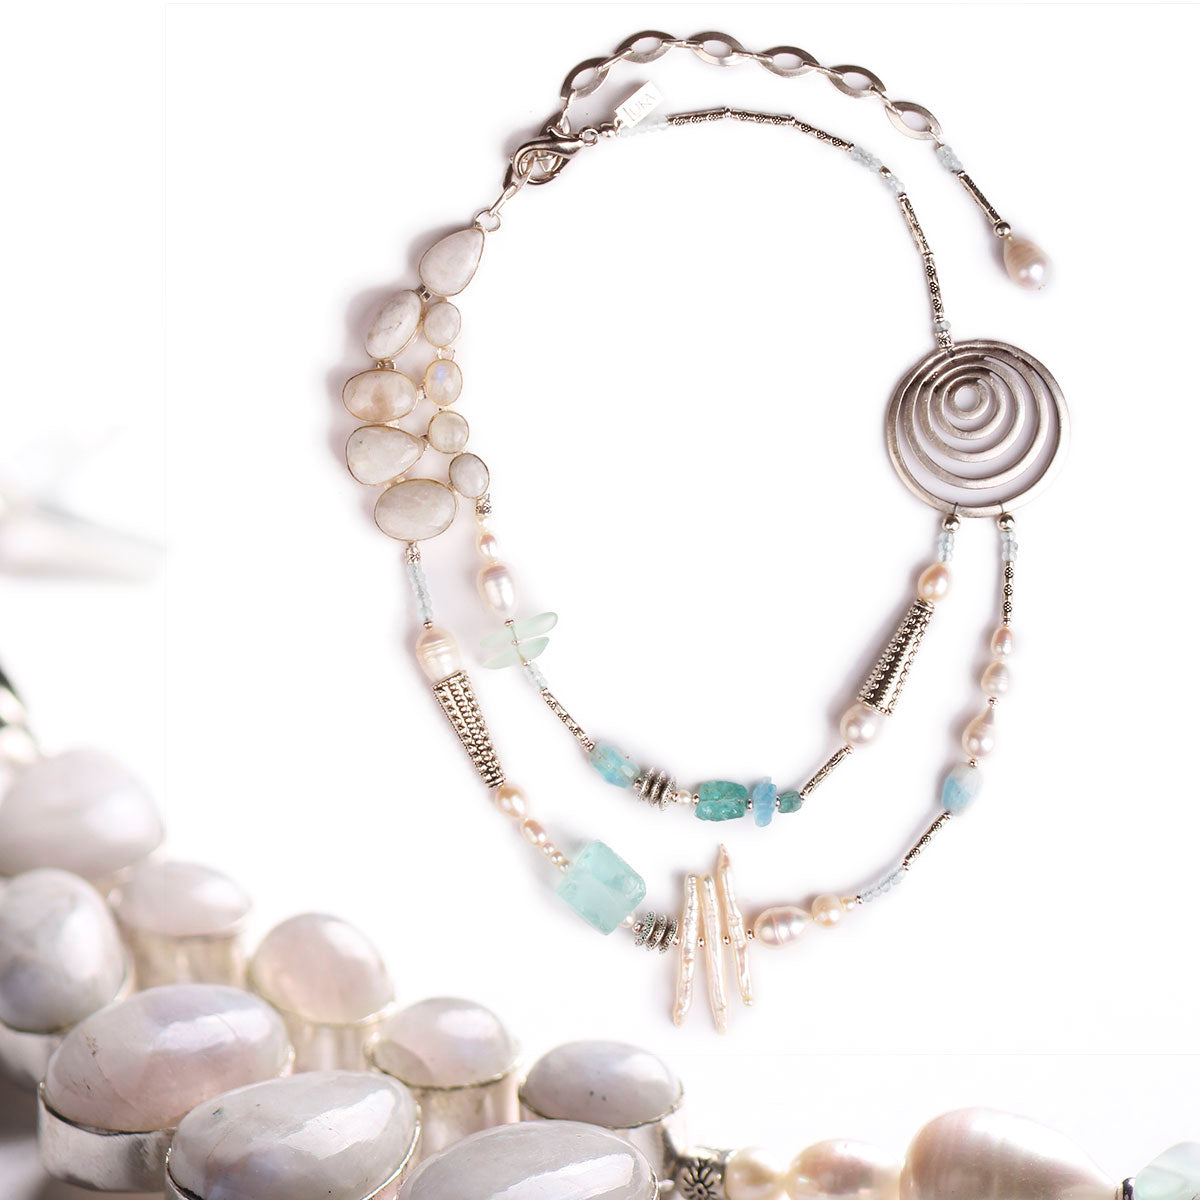 N°517 The Impeccable Moonstone Spy Necklace